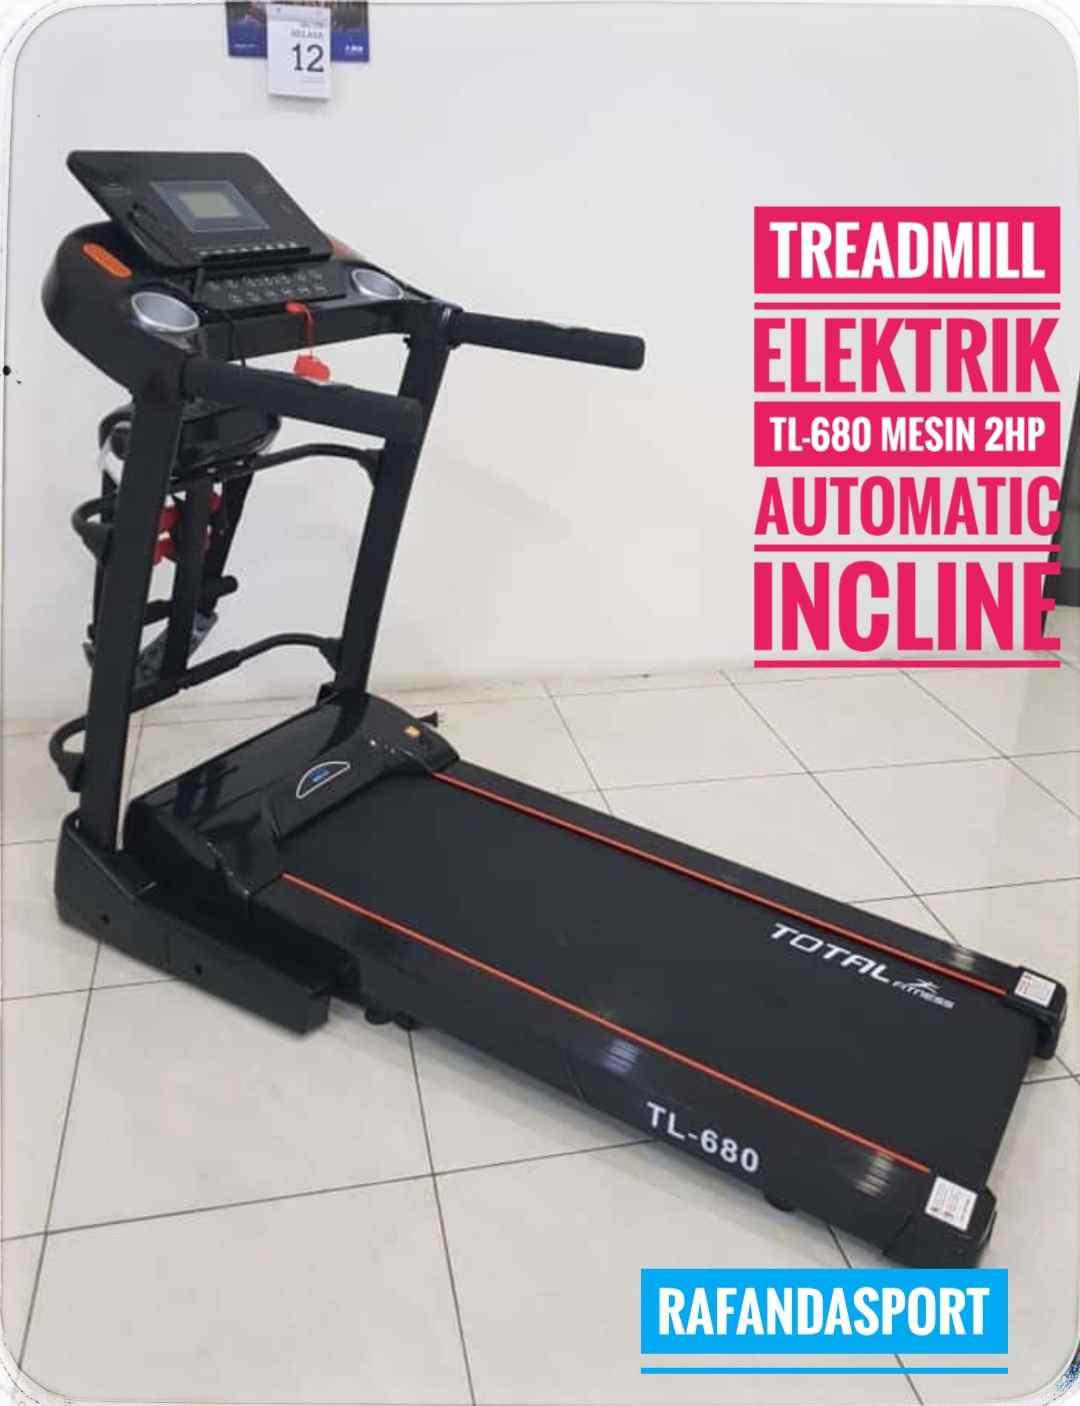 Treadmillelektrik-3in1-tl680-totalfitness